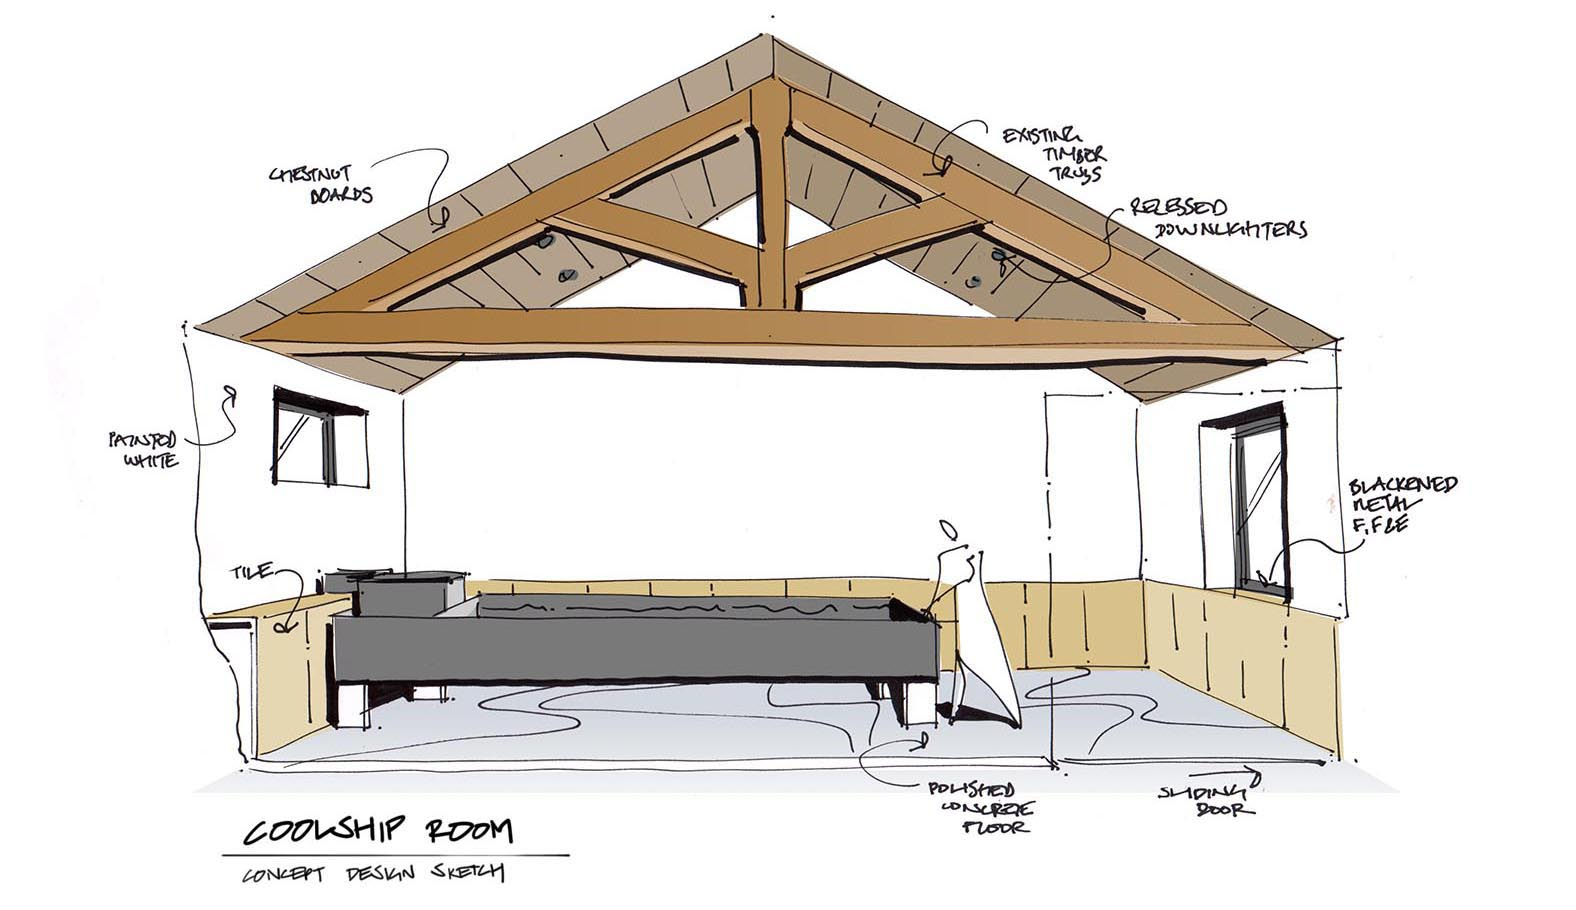 Duration Brewing Coolship Room Design Sketch